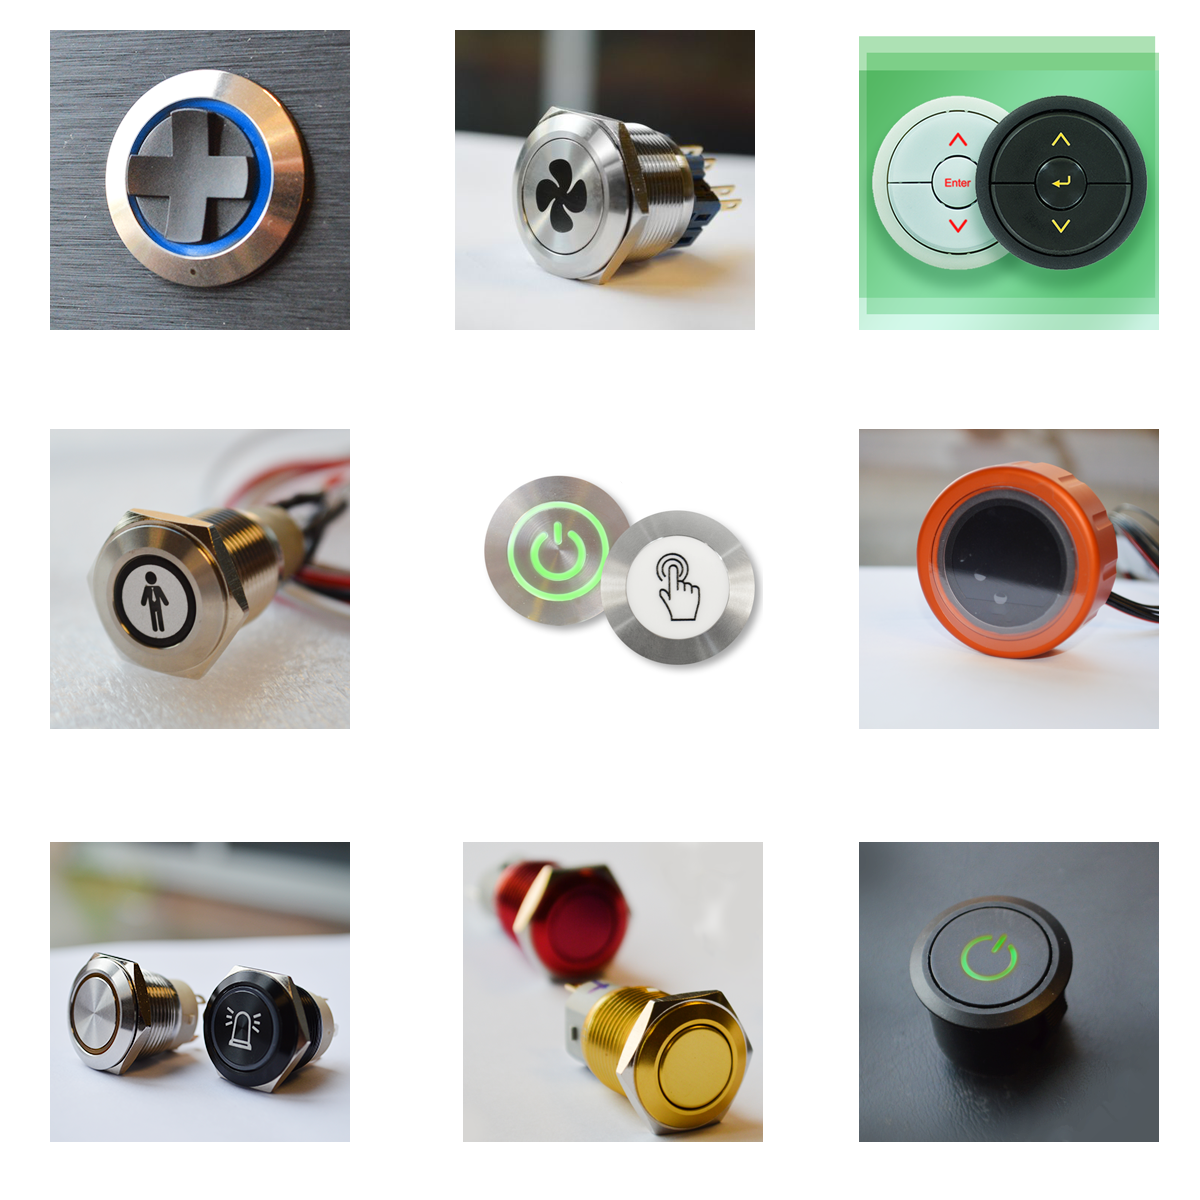 RJS Electronics Ltd, panel mount custom electromechanical switches with led illumination or without led illumination, supporting custom etching and stamping, supports coloured caps and metal colour finishes, black annodised or gold finishes, brushed or polished steel RJS Electronics Ltd